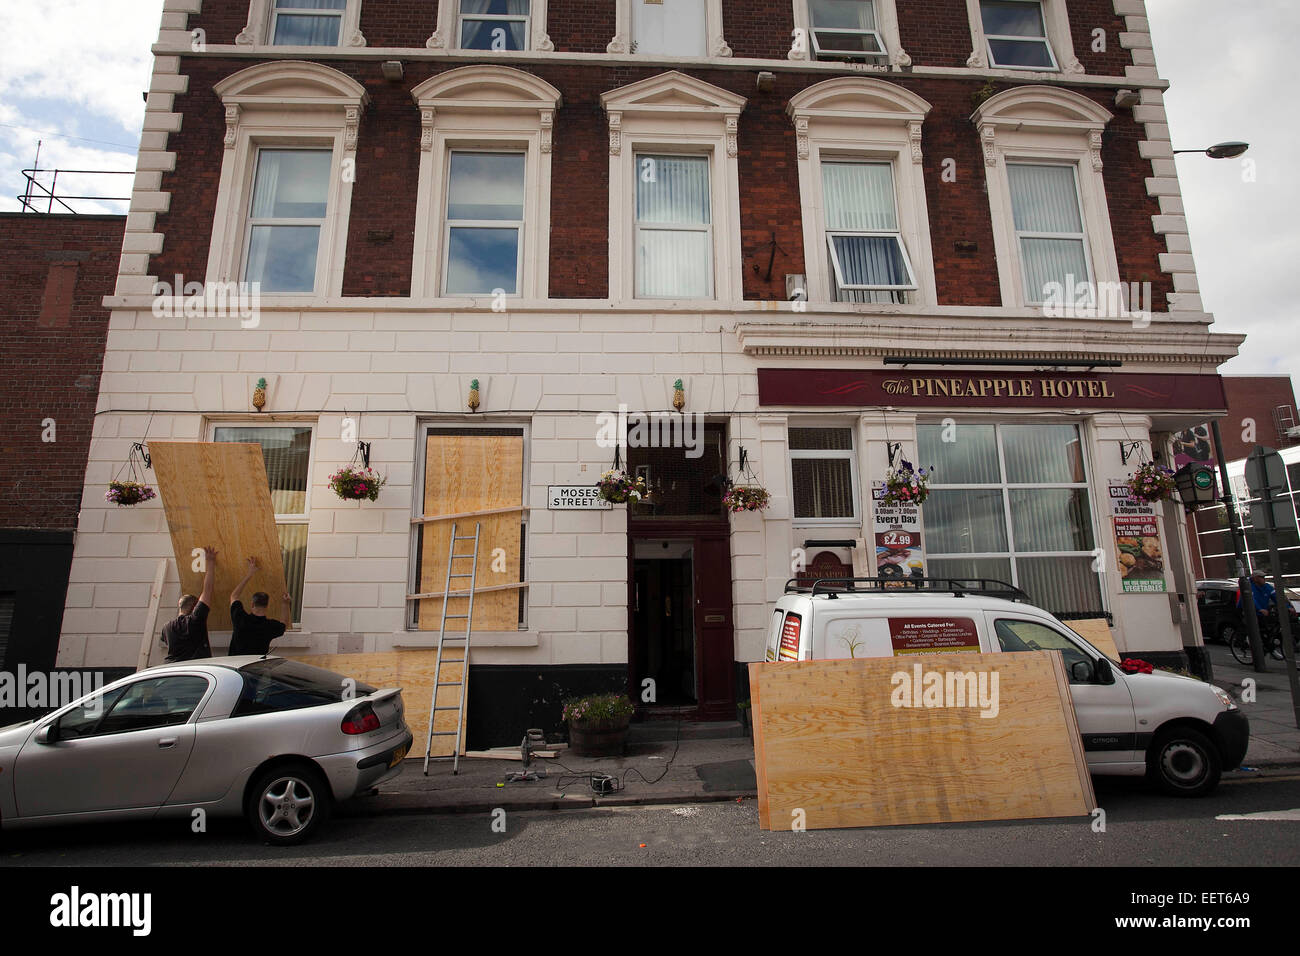 Toxteth , Liverpool , Tuesday 9/8/11 . Aftermath of riots  .  The Pineapple Hotel on Moses Street boards up as a - Stock Image